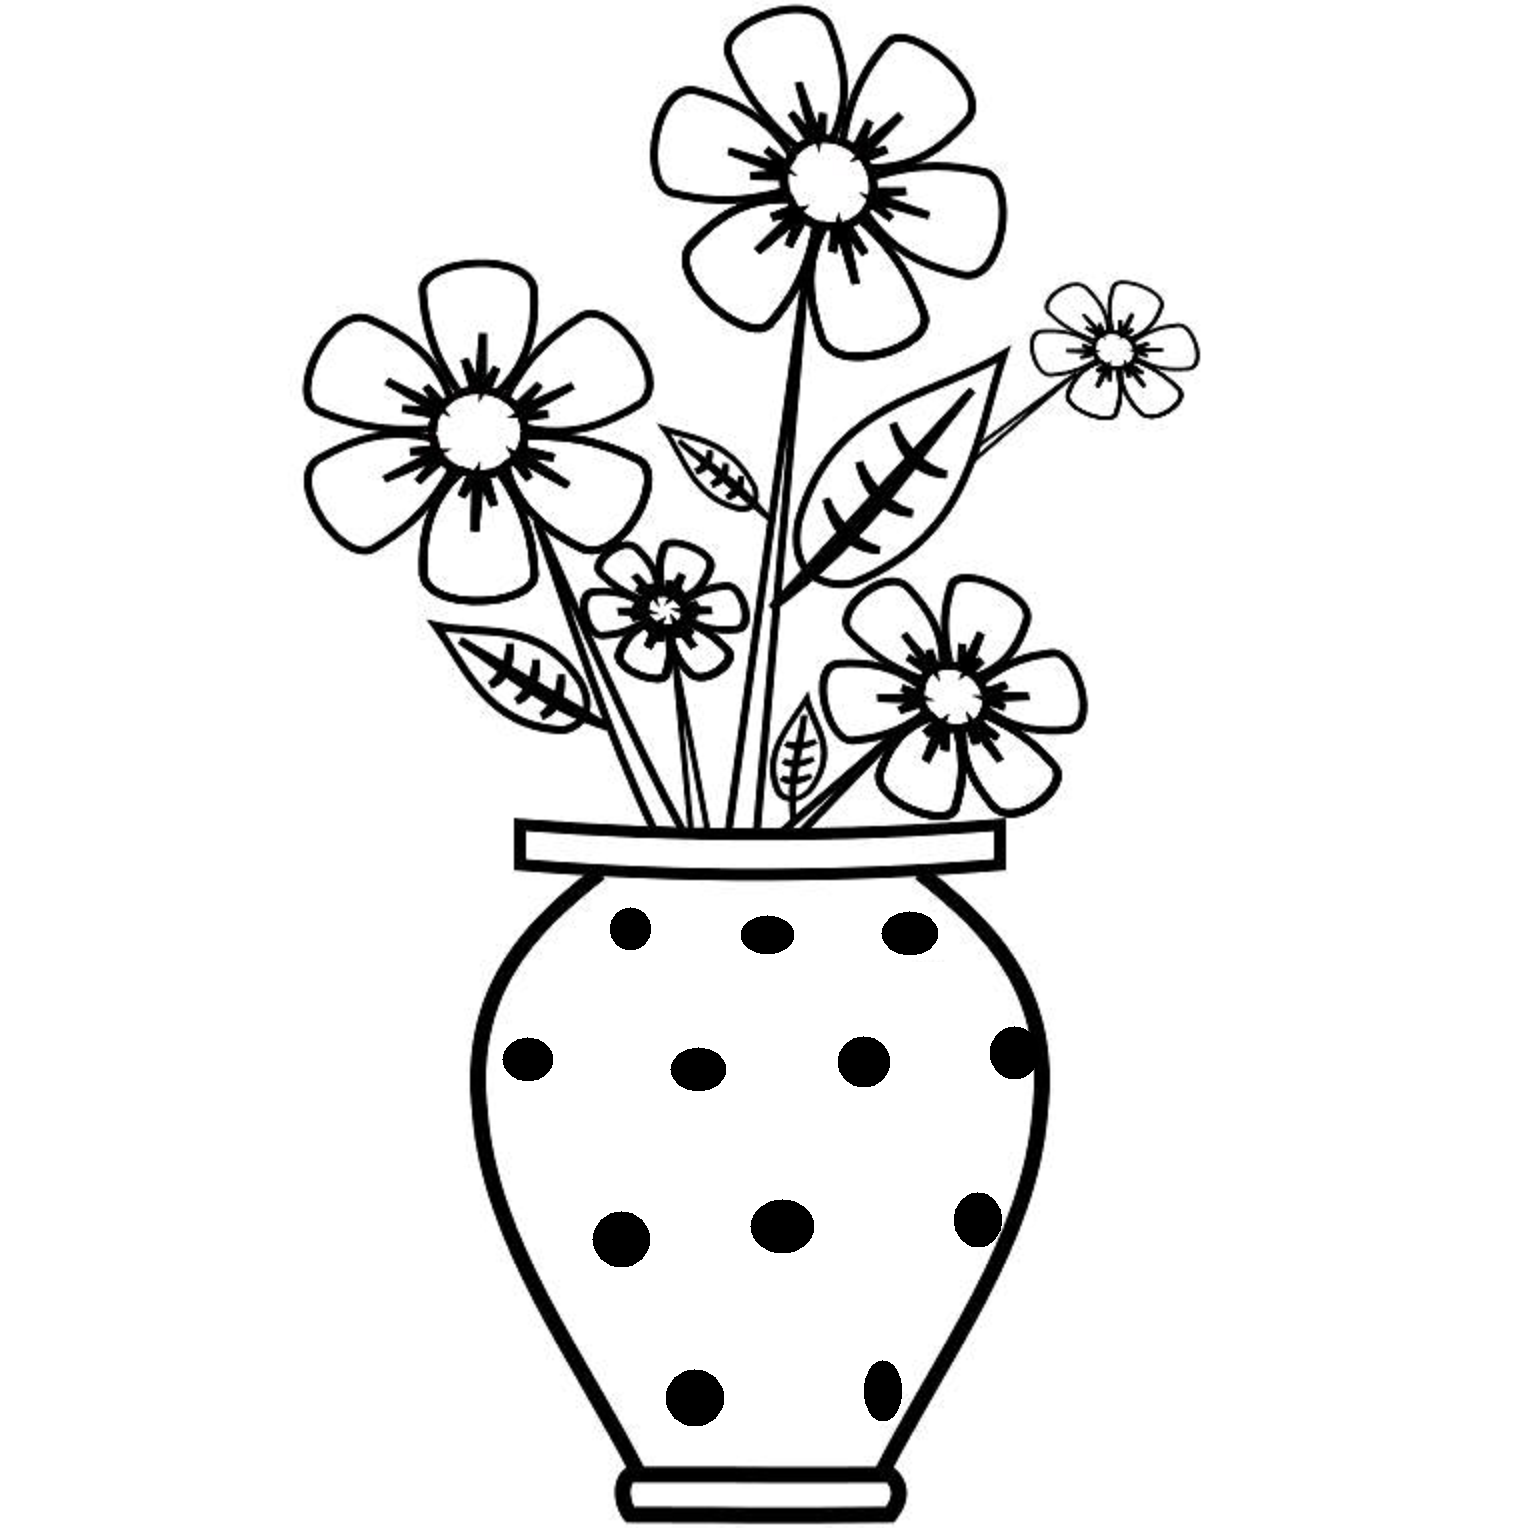 Black and white flowers drawing at getdrawings free for 1532x1528 vase with flowers drawings for kids mightylinksfo